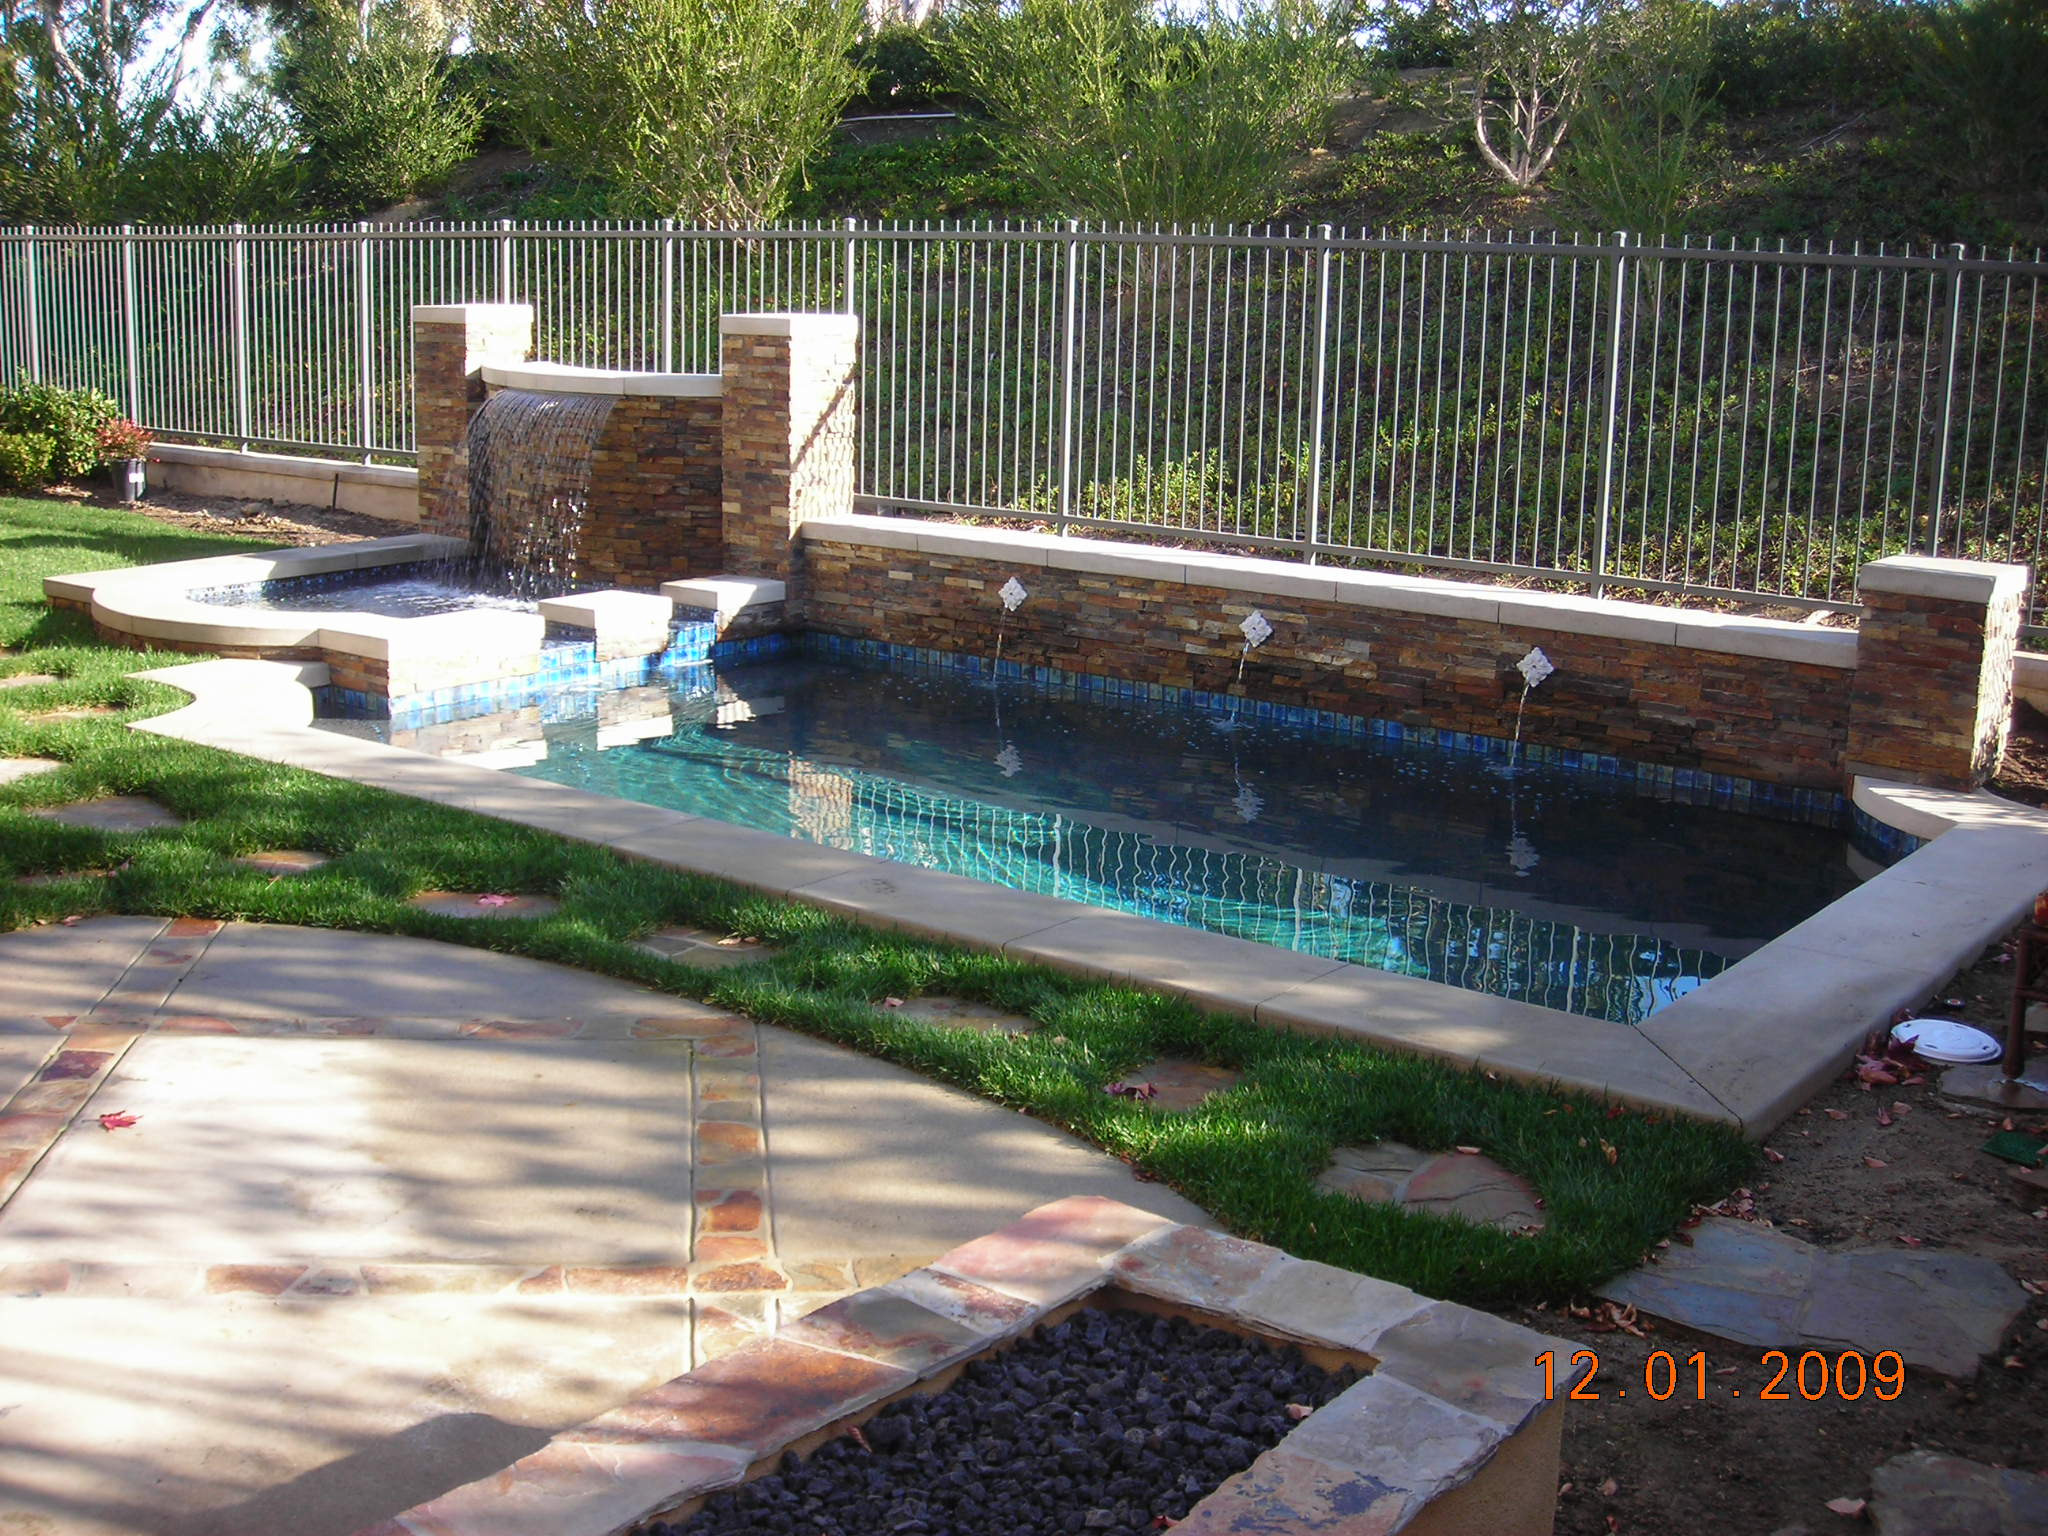 Building a natural swimming pool - Small Square Swimming Pools